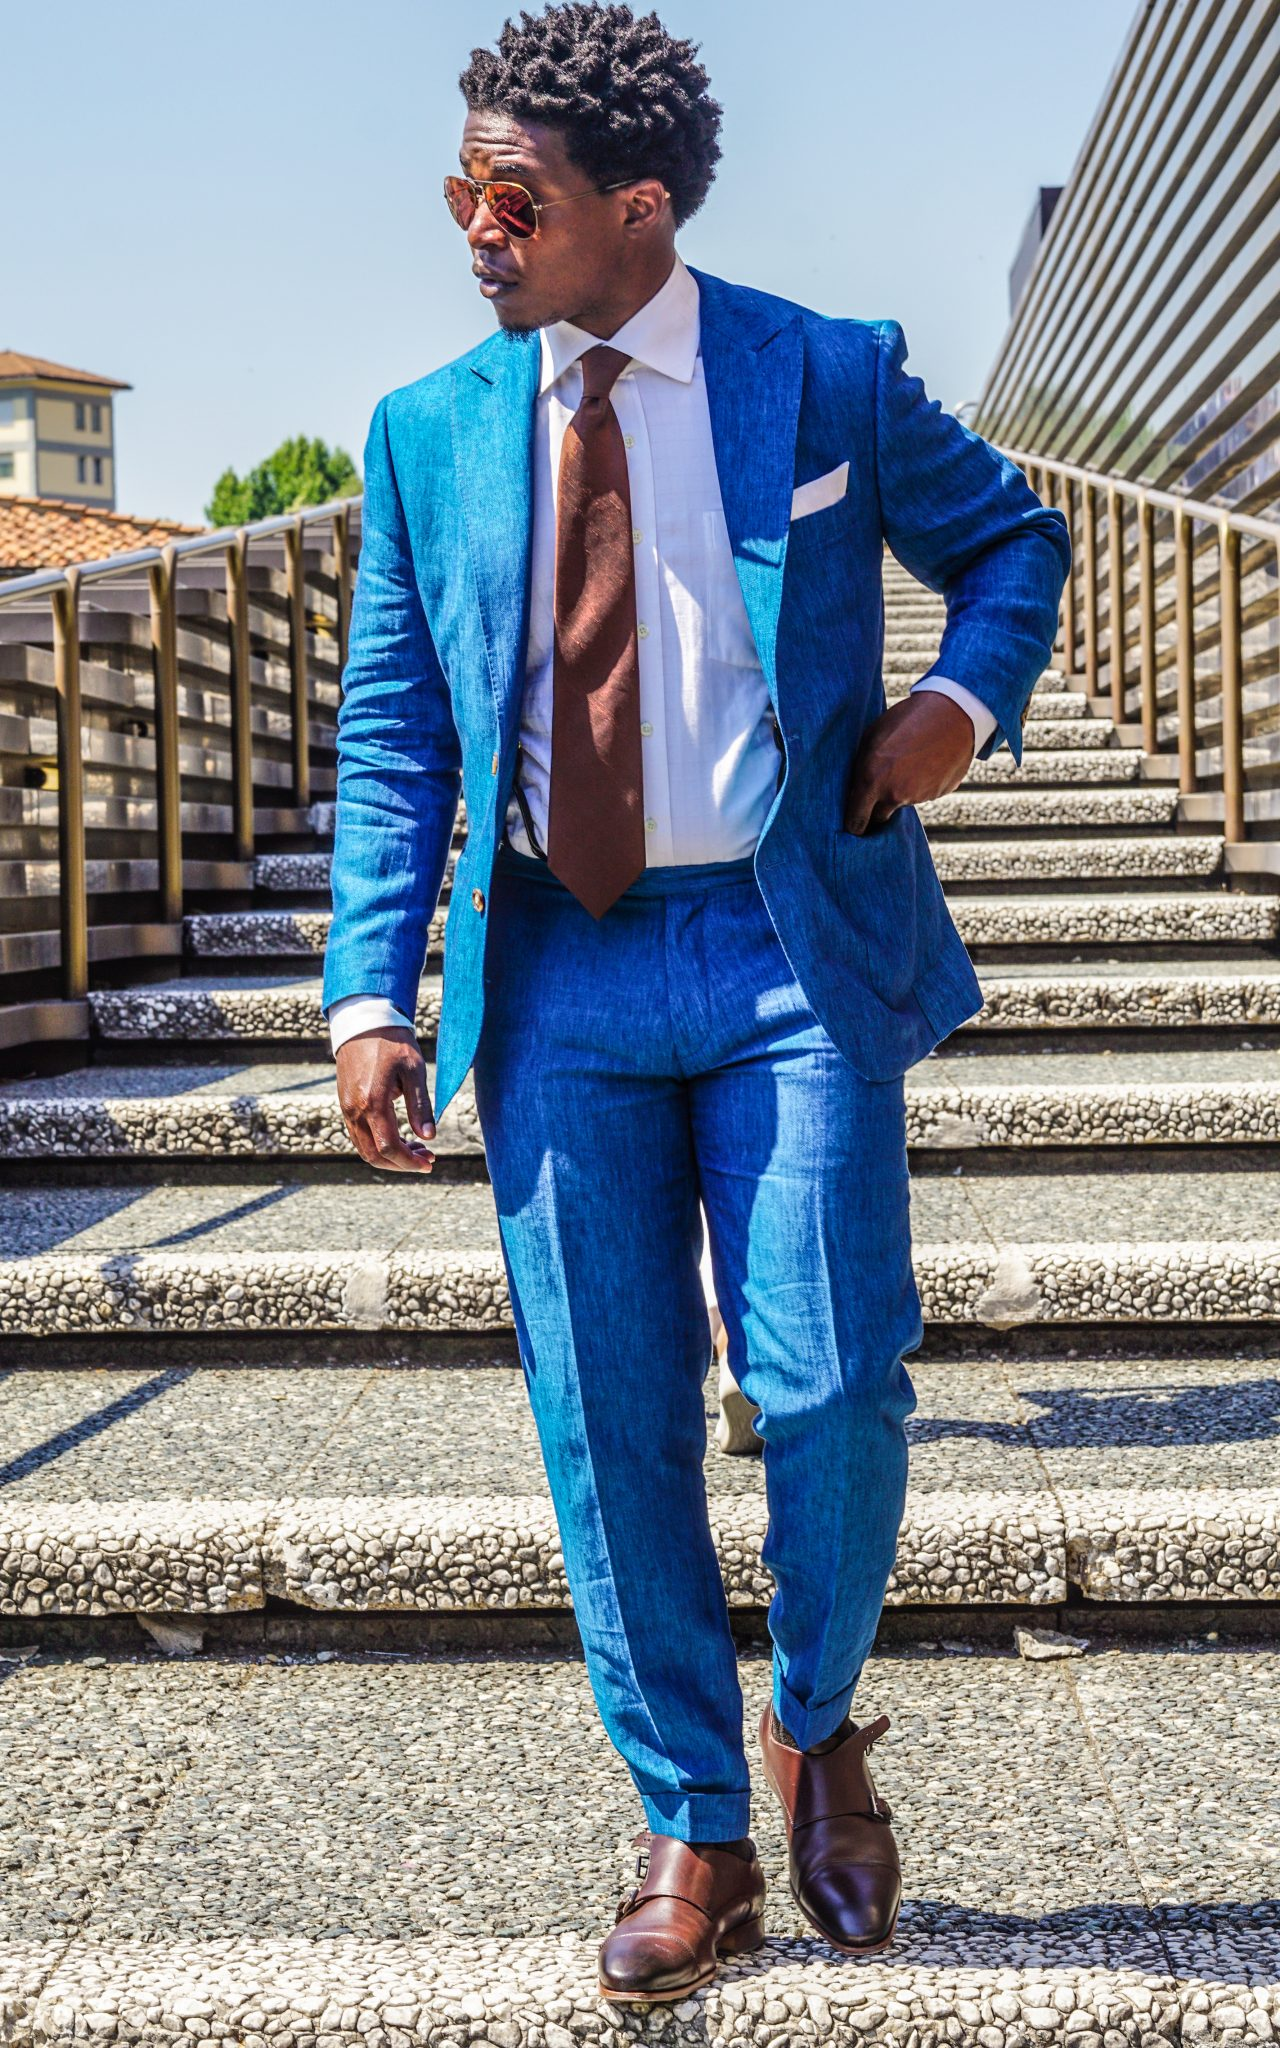 Pitti Uomo 92: What I Wore On Day 1